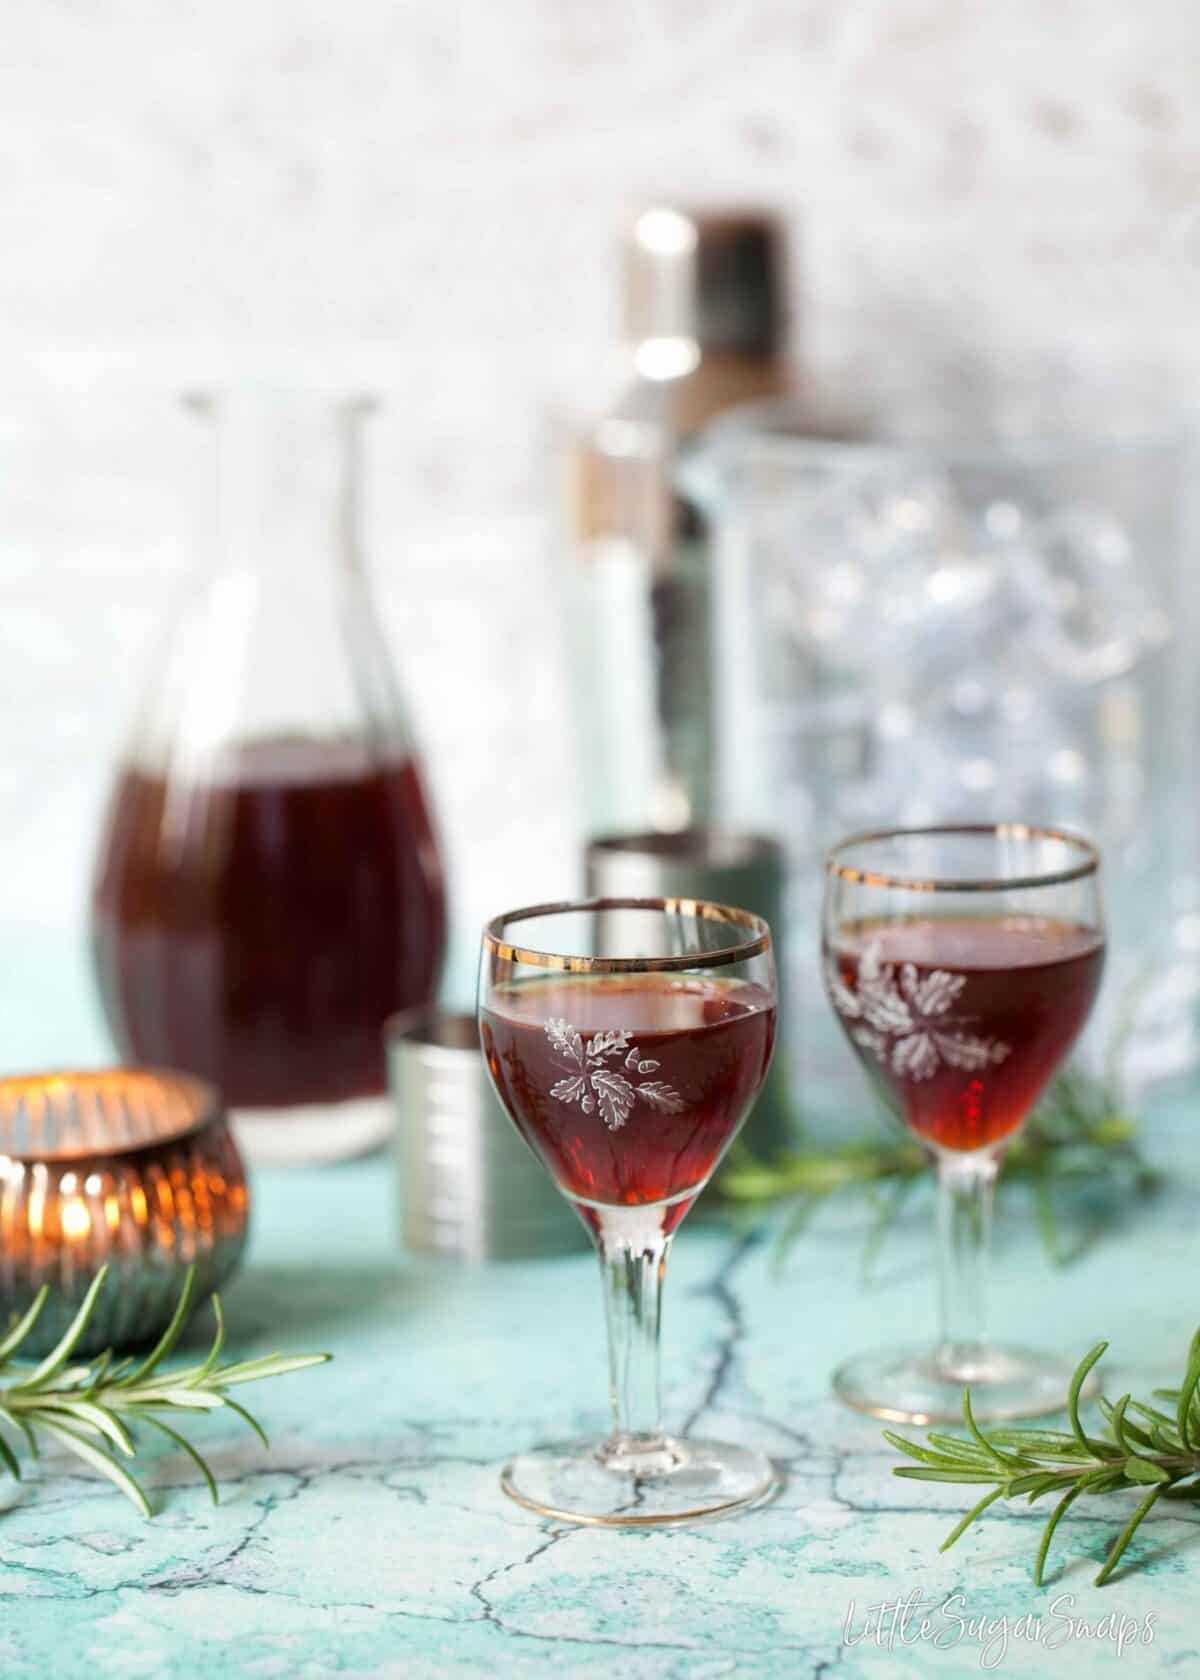 Vintage glasses of sloe gin with a small decanter of sloe gin in the background